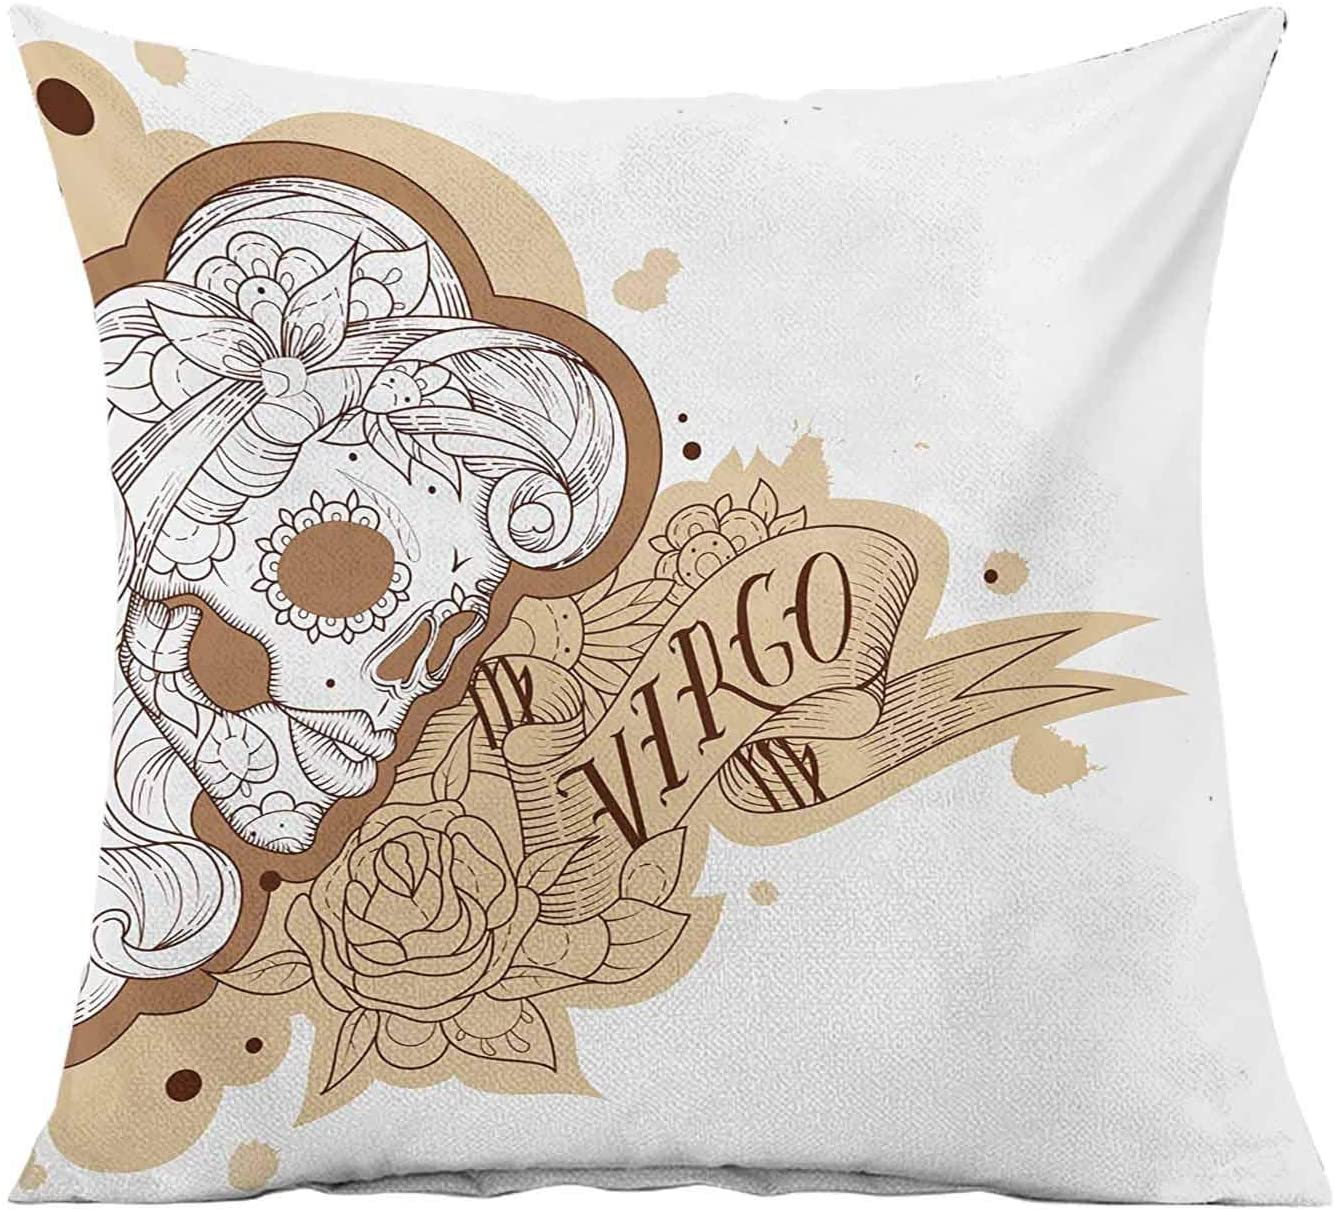 Zodiac Virgo Throw Pillow Cushion Cover,Gothic Mexican Female Portrait Sugar Skull Horoscope Tattoo Modern Home Decor Accent Square Bedroom Living Room Cushion Cases,22x22 Inches,